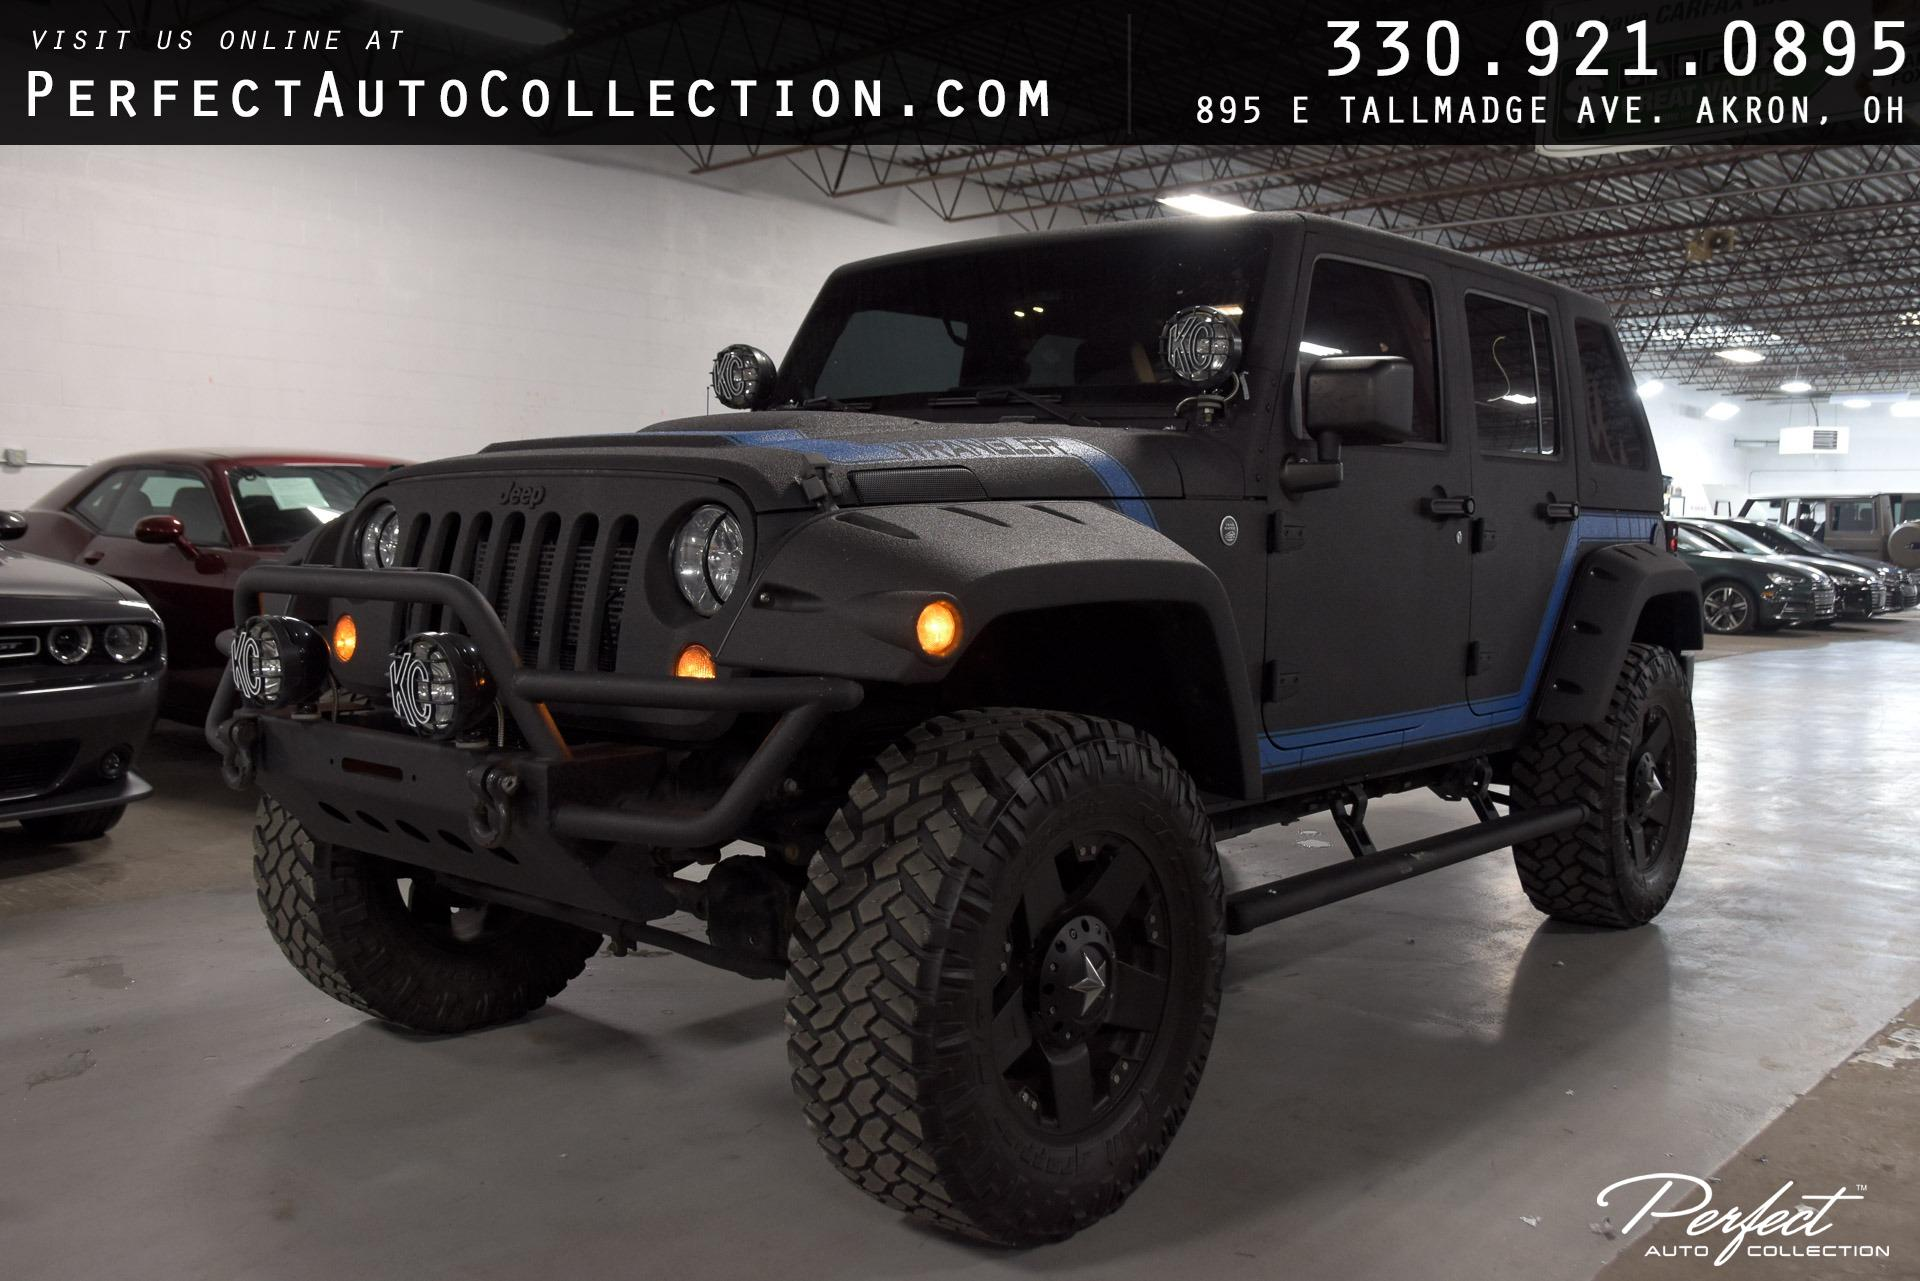 Used 2013 Jeep Wrangler Unlimited Sport for sale $31,895 at Perfect Auto Collection in Akron OH 44310 1